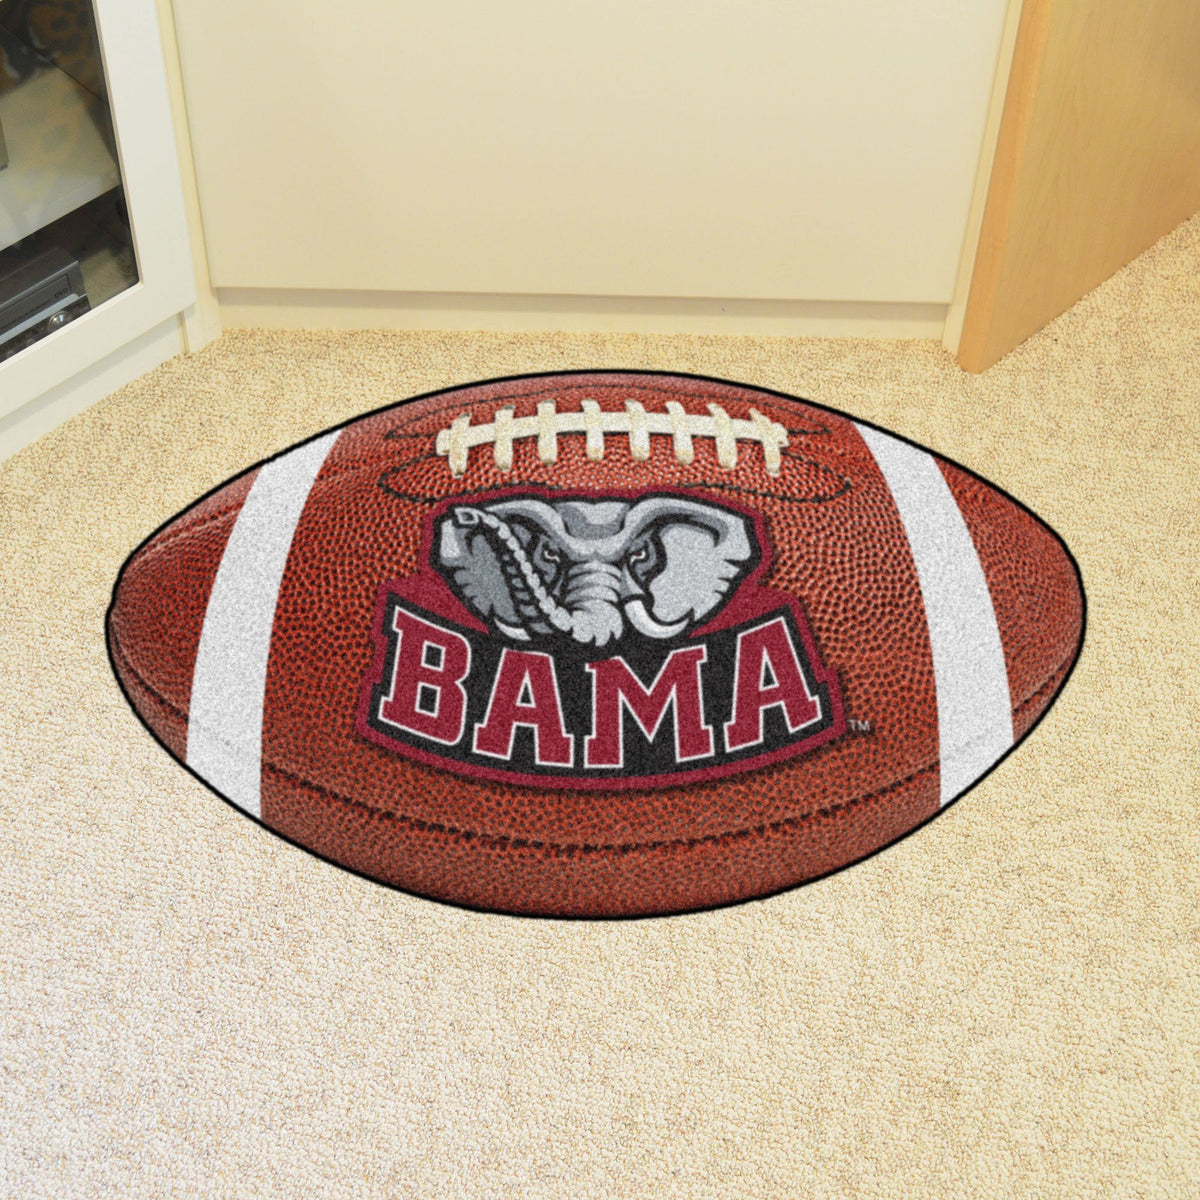 Collegiate - Football Mat: A - K Collegiate Mats, Rectangular Mats, Football Mat, Collegiate, Home Fan Mats Alabama